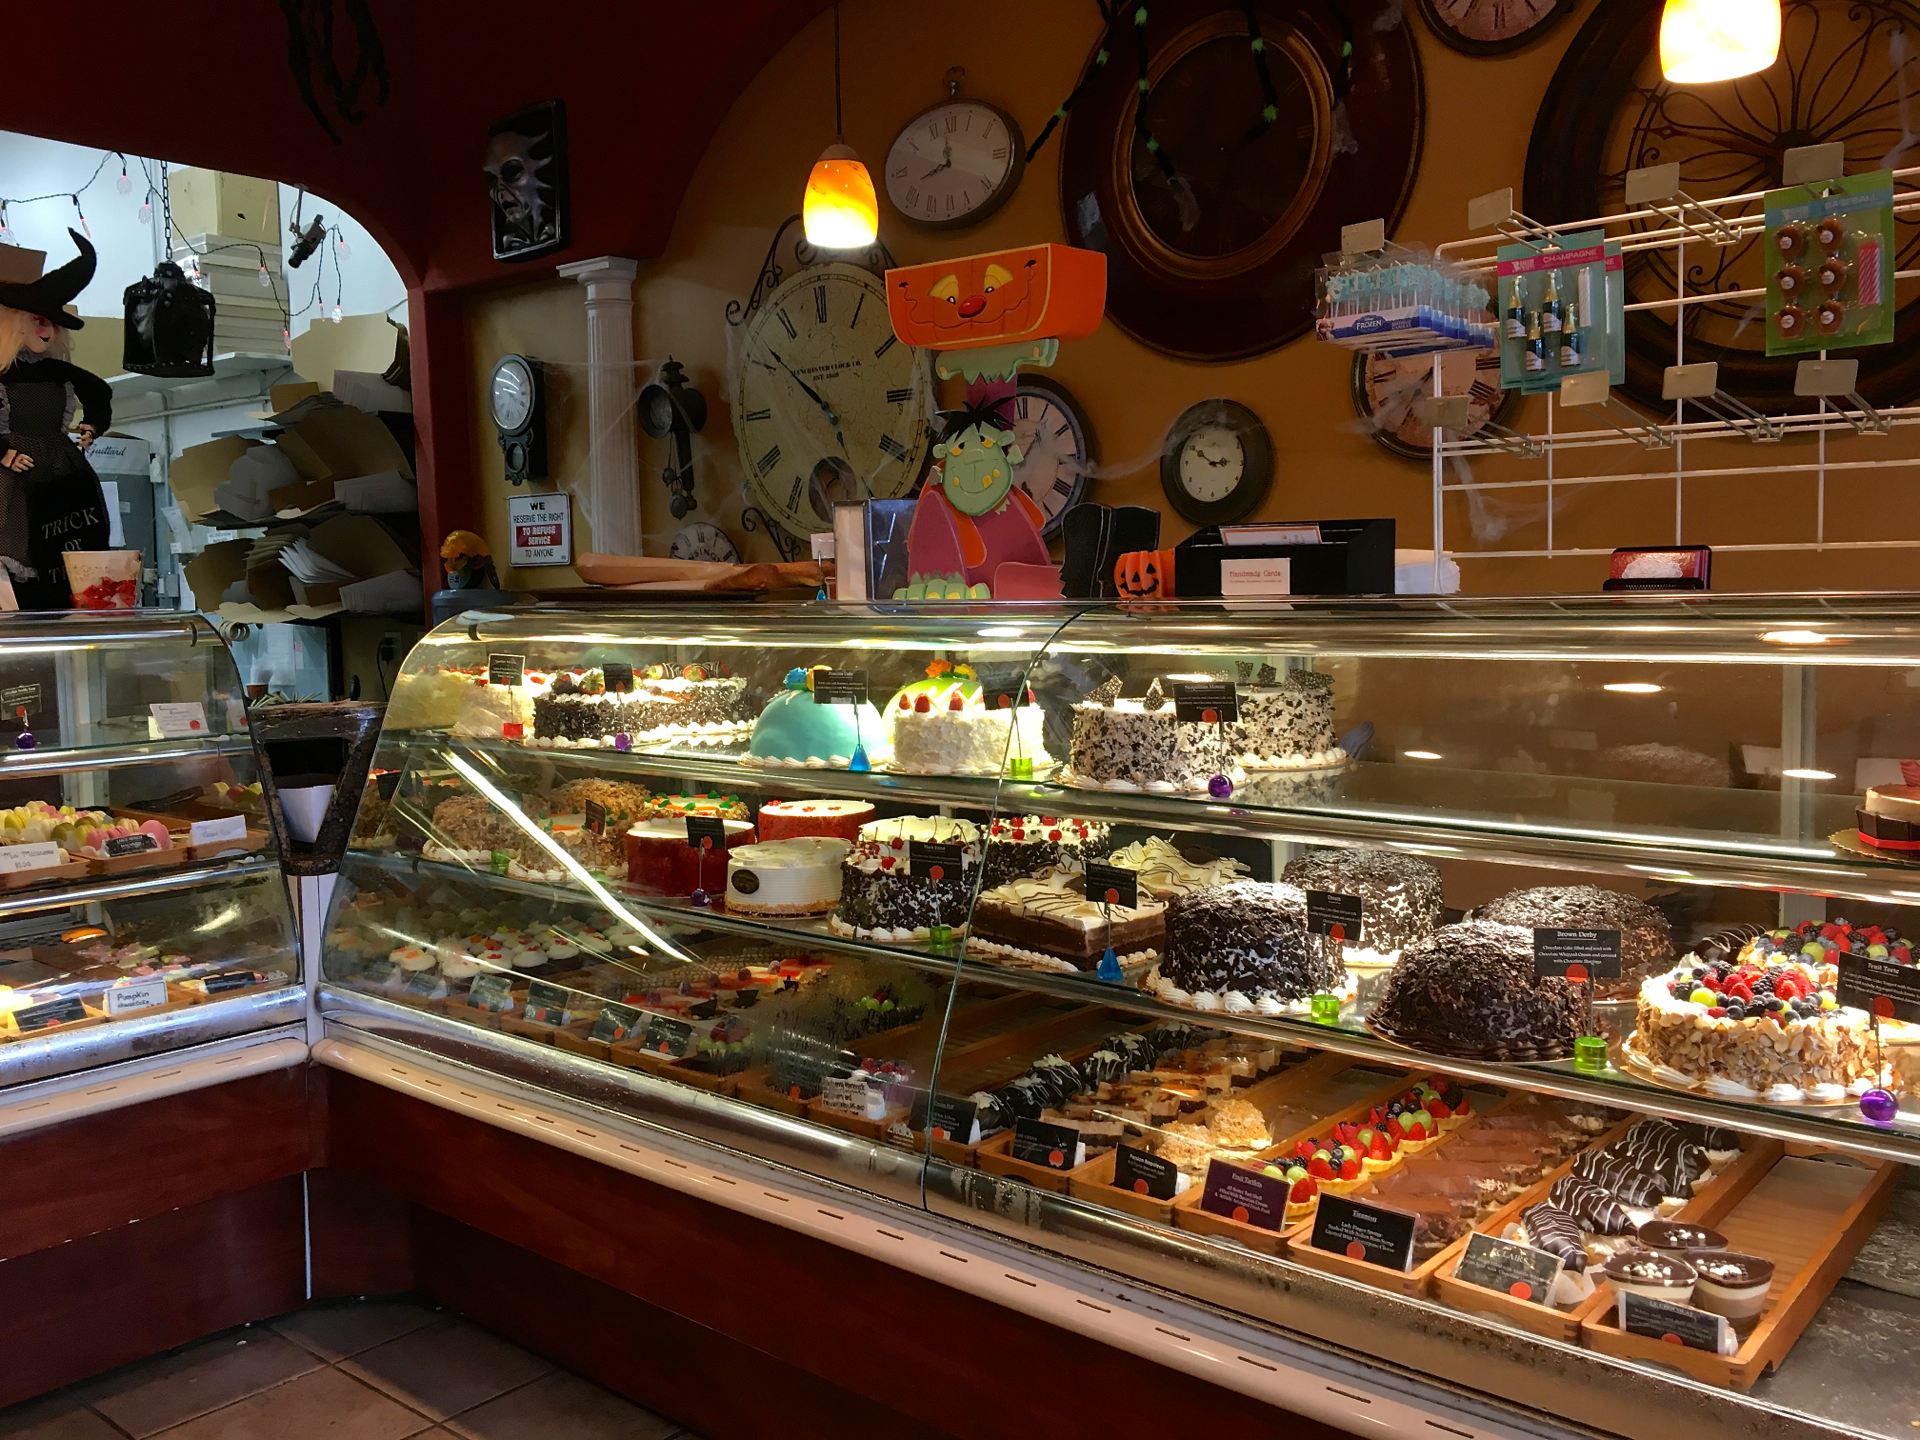 5 Popular Bakeries South of San Francisco Serving European-Style Pastries Bay Area Bites